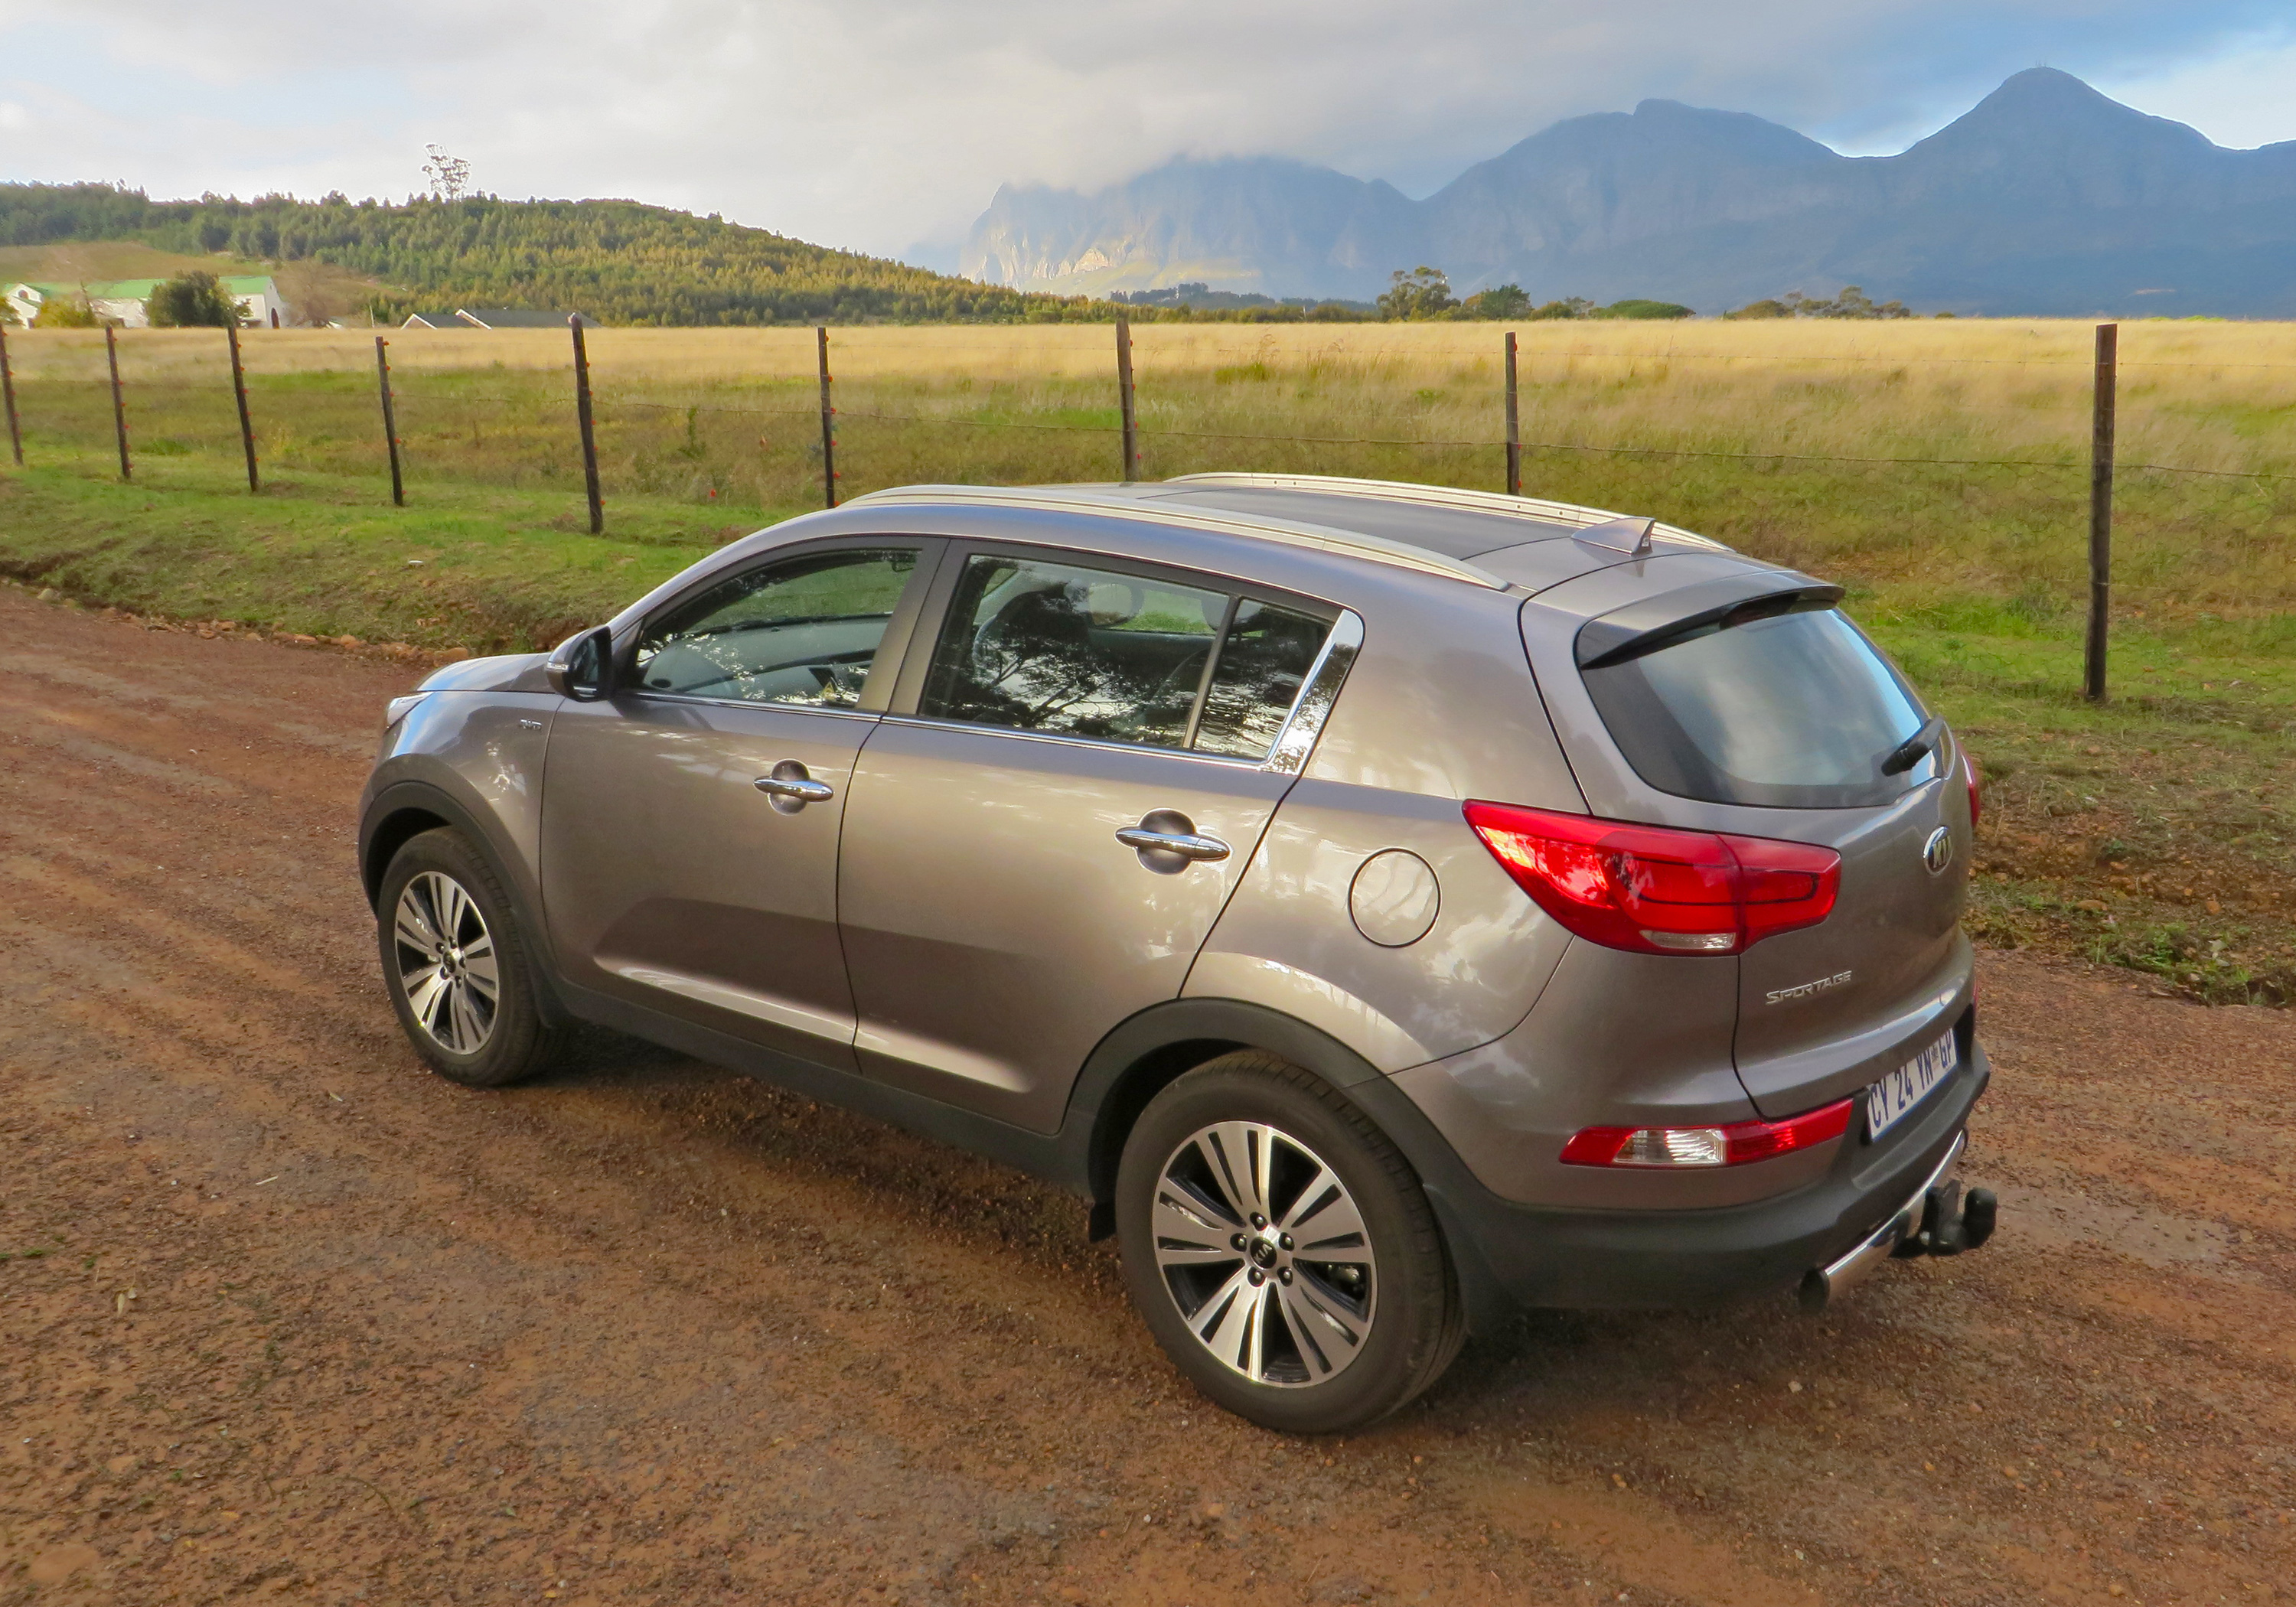 kia sportage crdi awd review wheelswrite. Black Bedroom Furniture Sets. Home Design Ideas